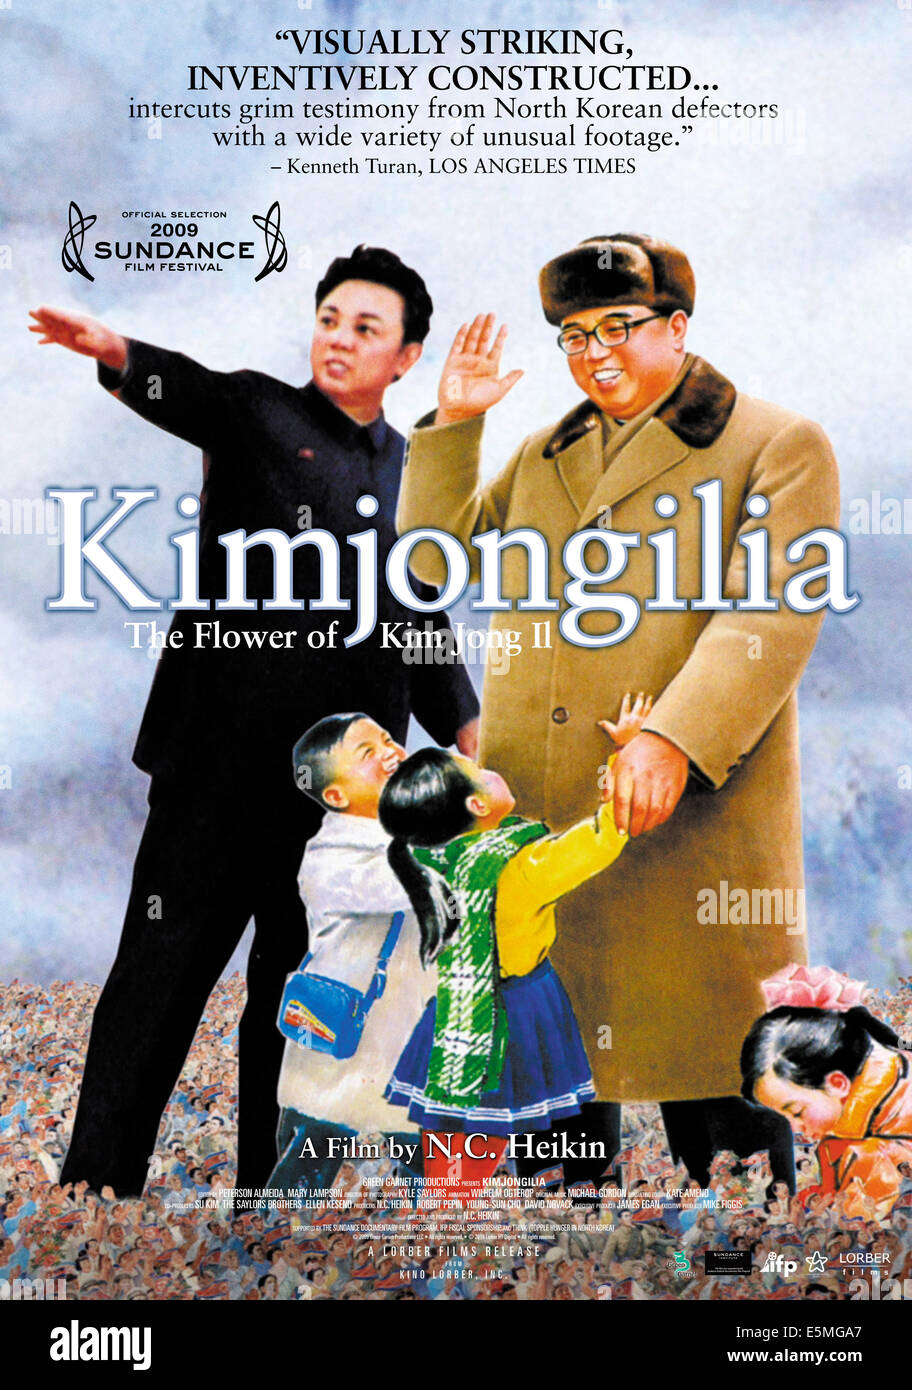 KIMJONGILIA, US poster art from a North Korean painting of KIM Il Sung (top right) and his son KIM Jong Il (left), - Stock Image